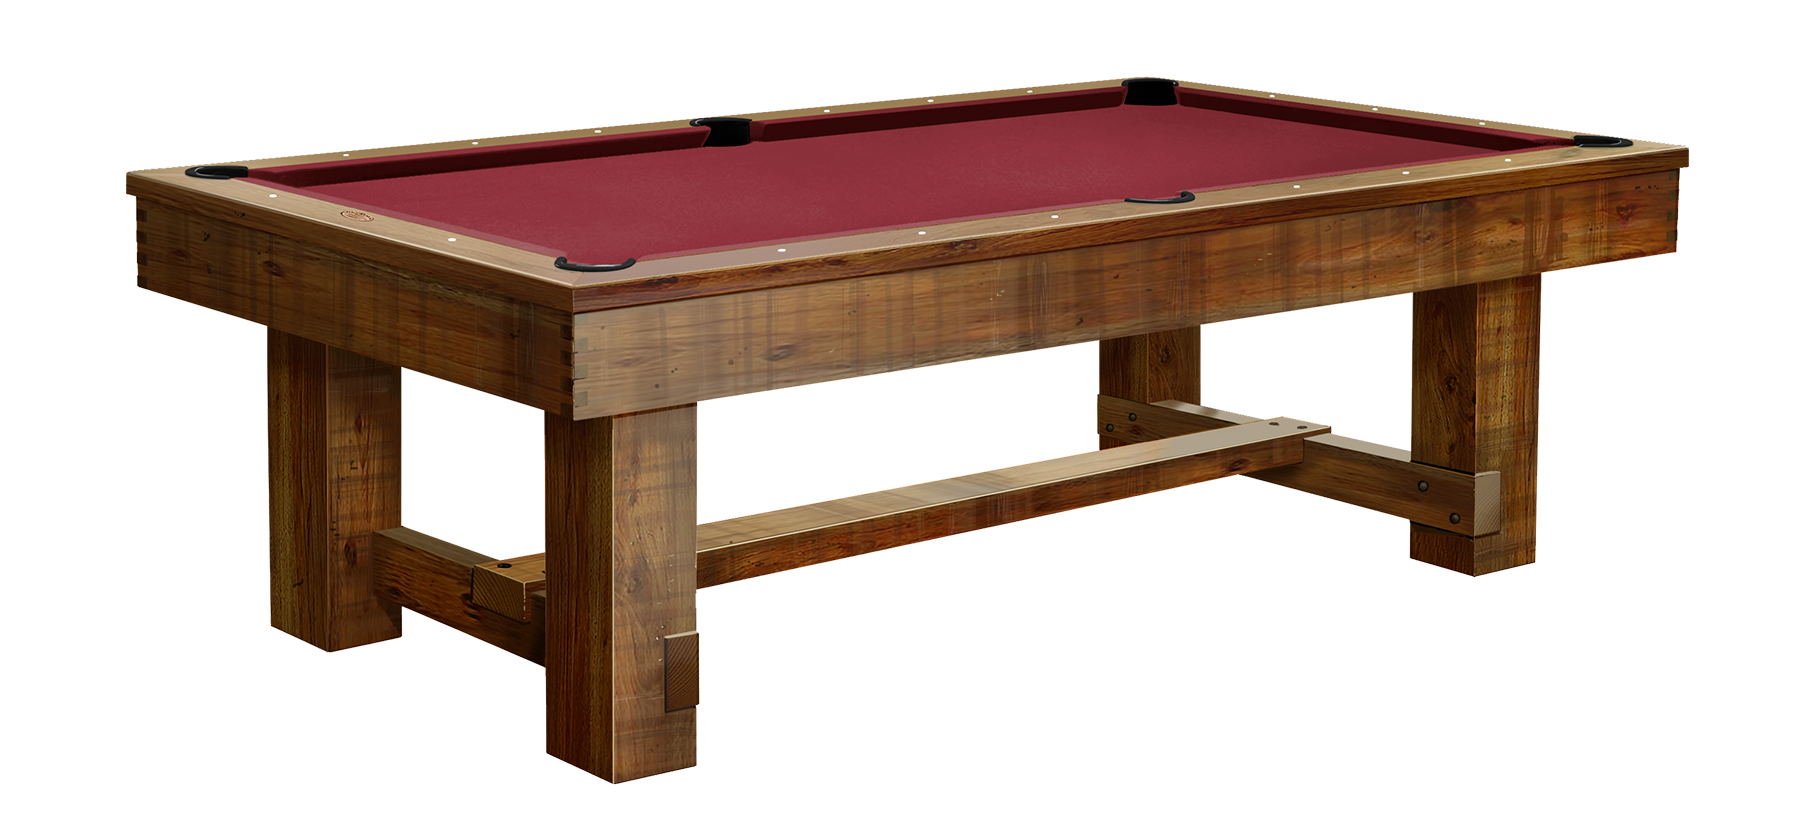 BRECKENRIDGE SHUFFLEBOARD AND MATCHING POOL TABLE | Olhausen Shuffleboards  | Pinterest | Pool Table, Basements And Game Rooms